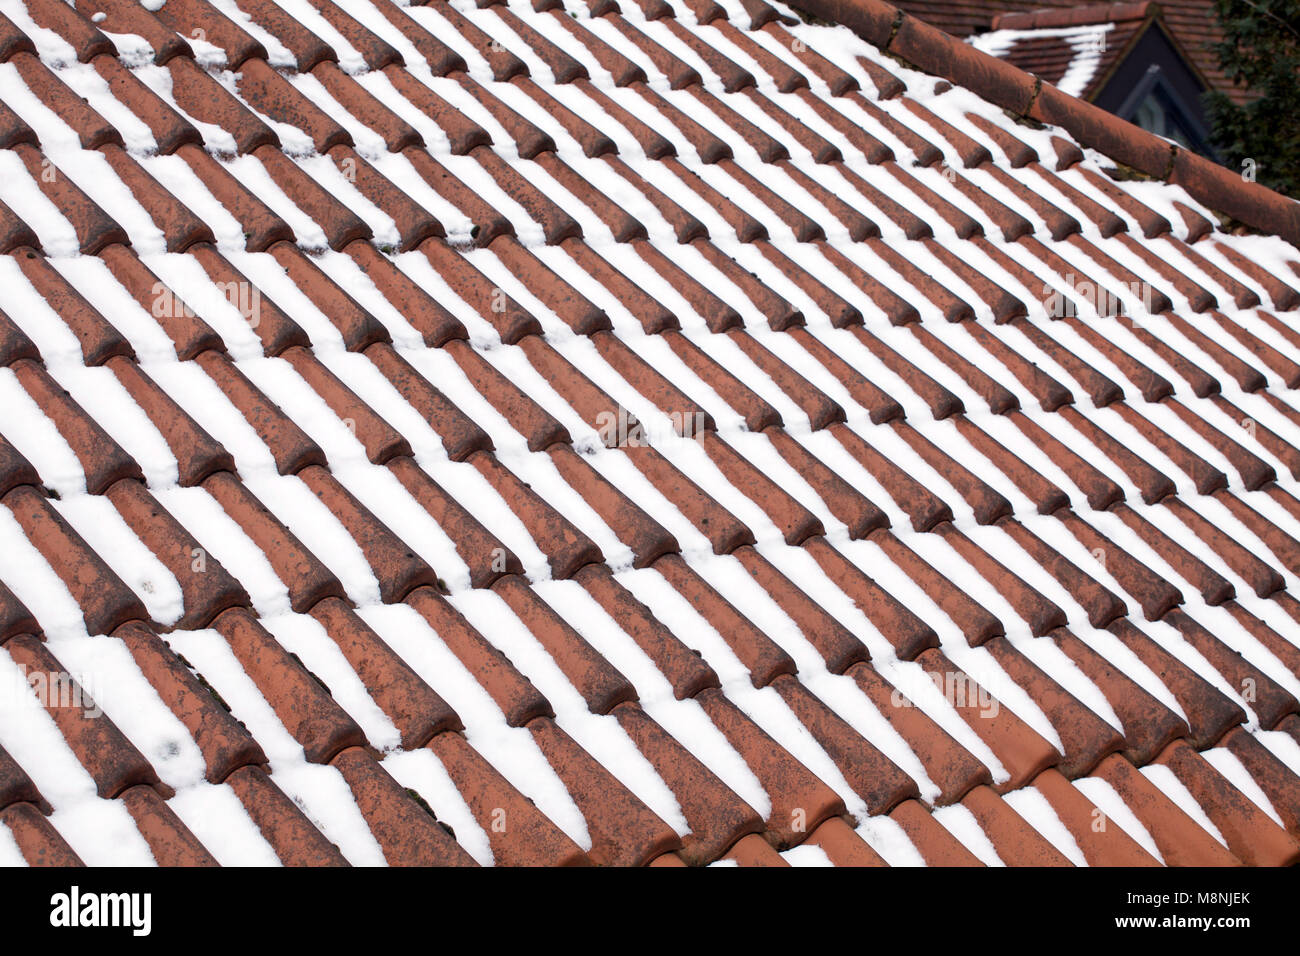 Roof tiles with recent snow fall covering them in winter - Stock Image